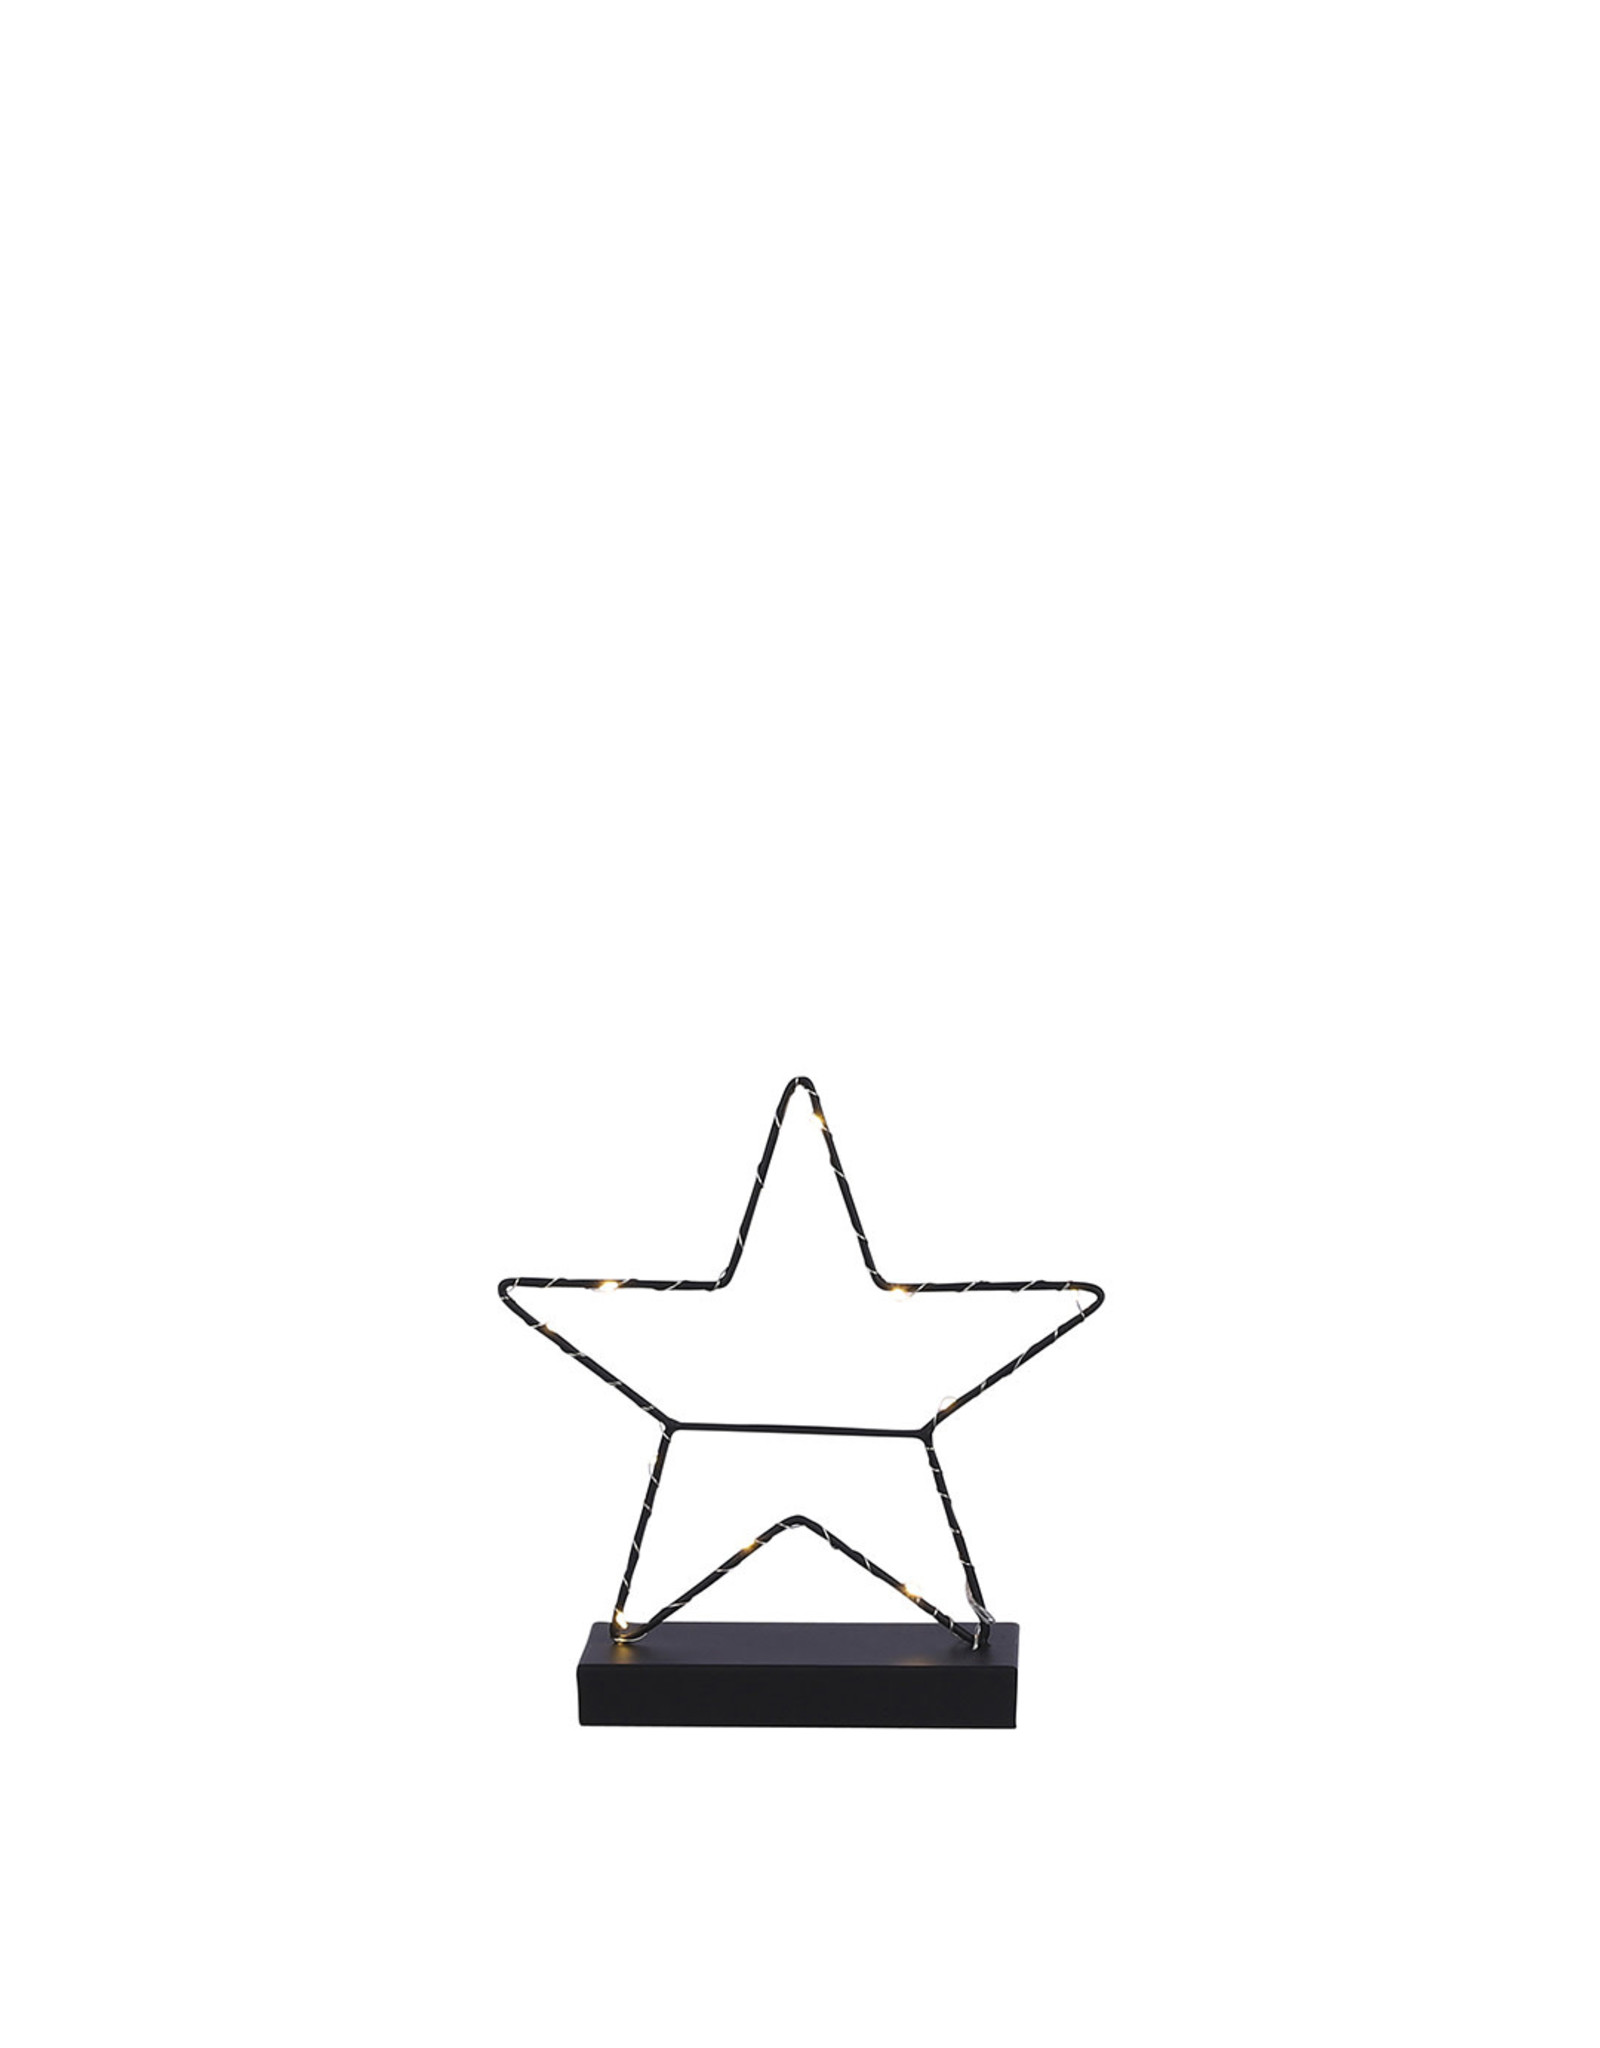 Decoration star black 12 led battery operated- w7xd25cm